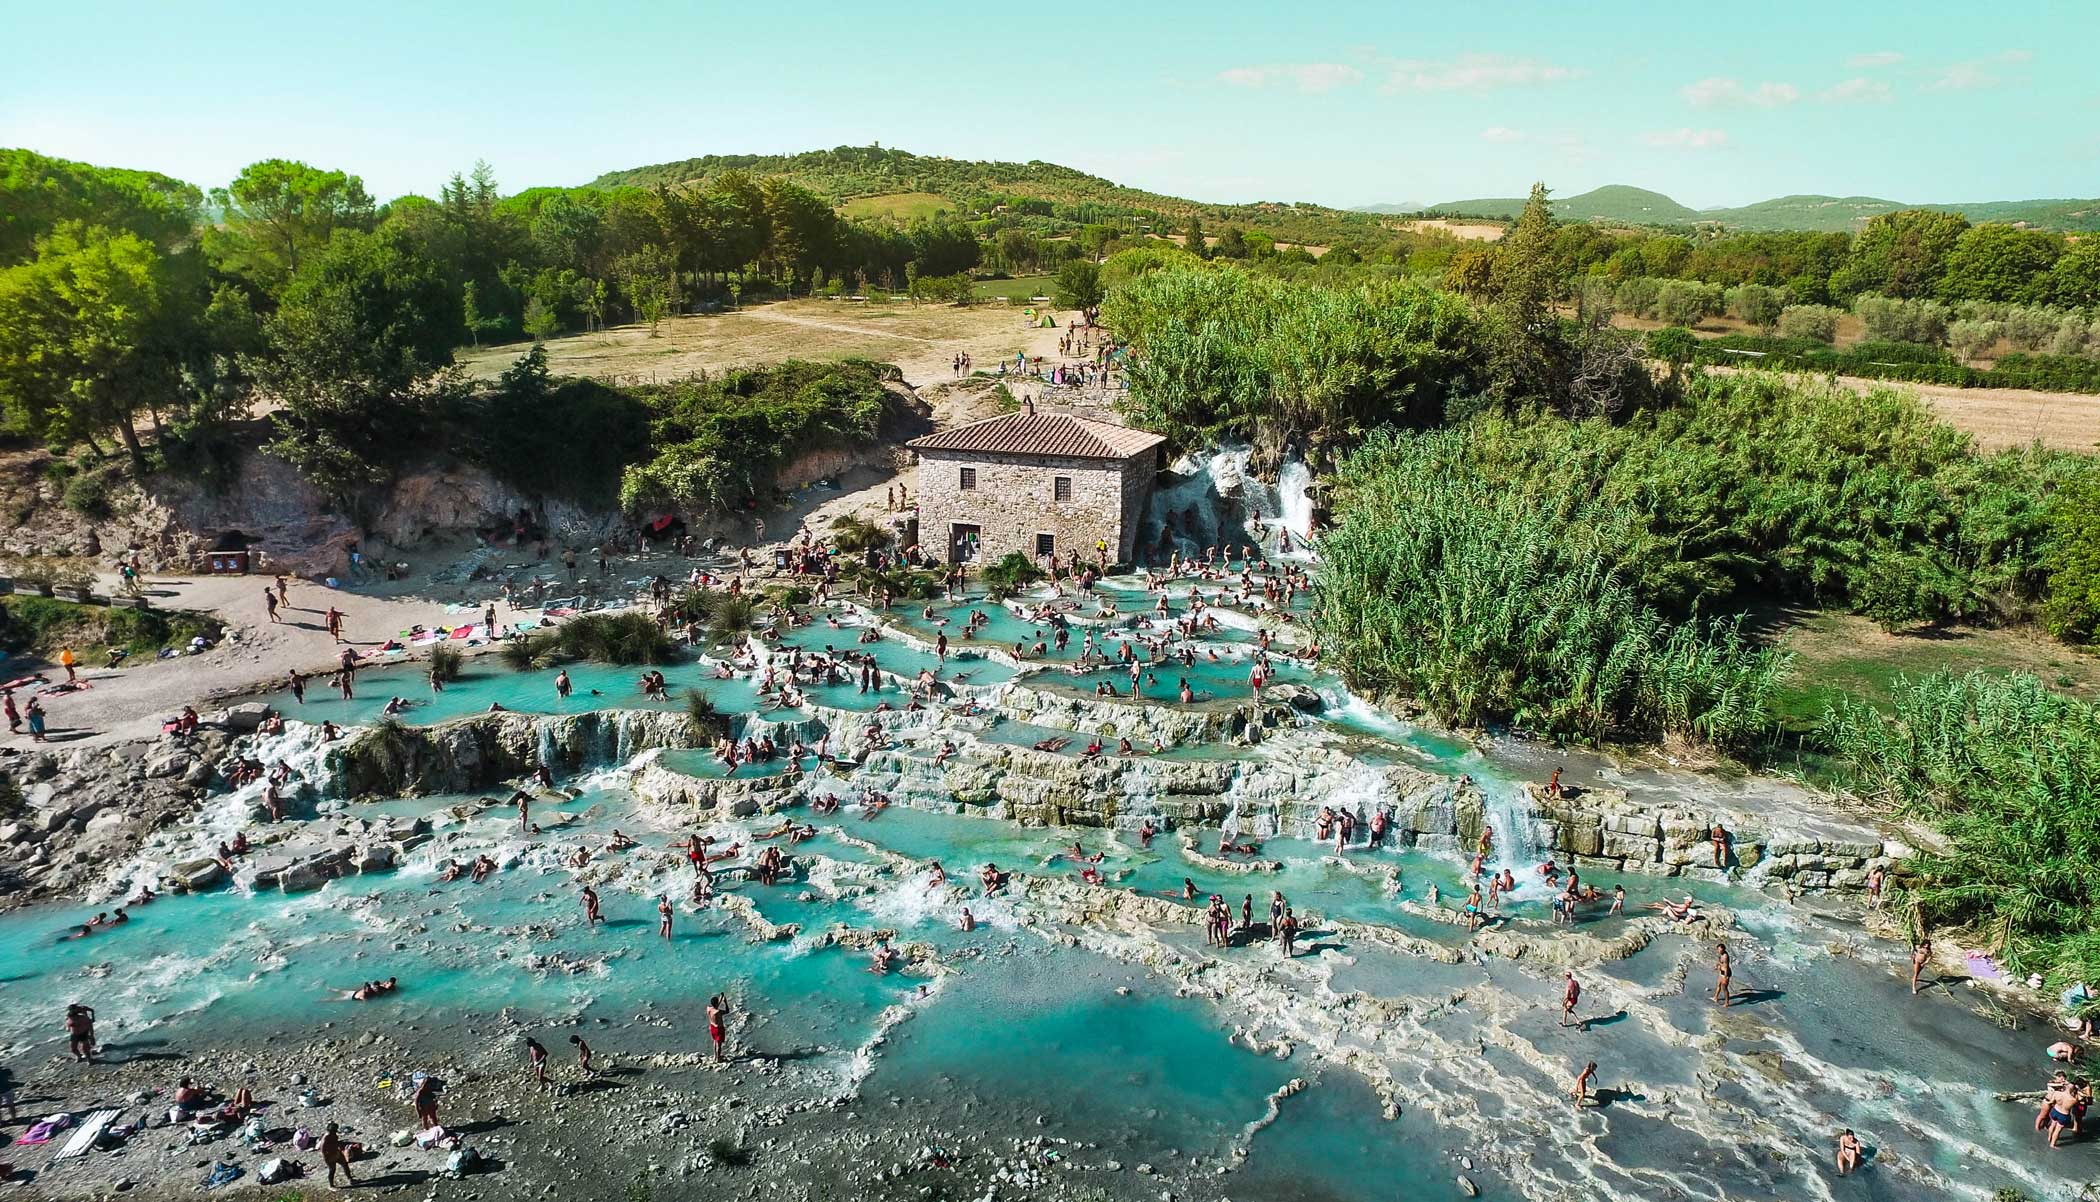 Saturnia hot springs in Central Tuscany, Italy.